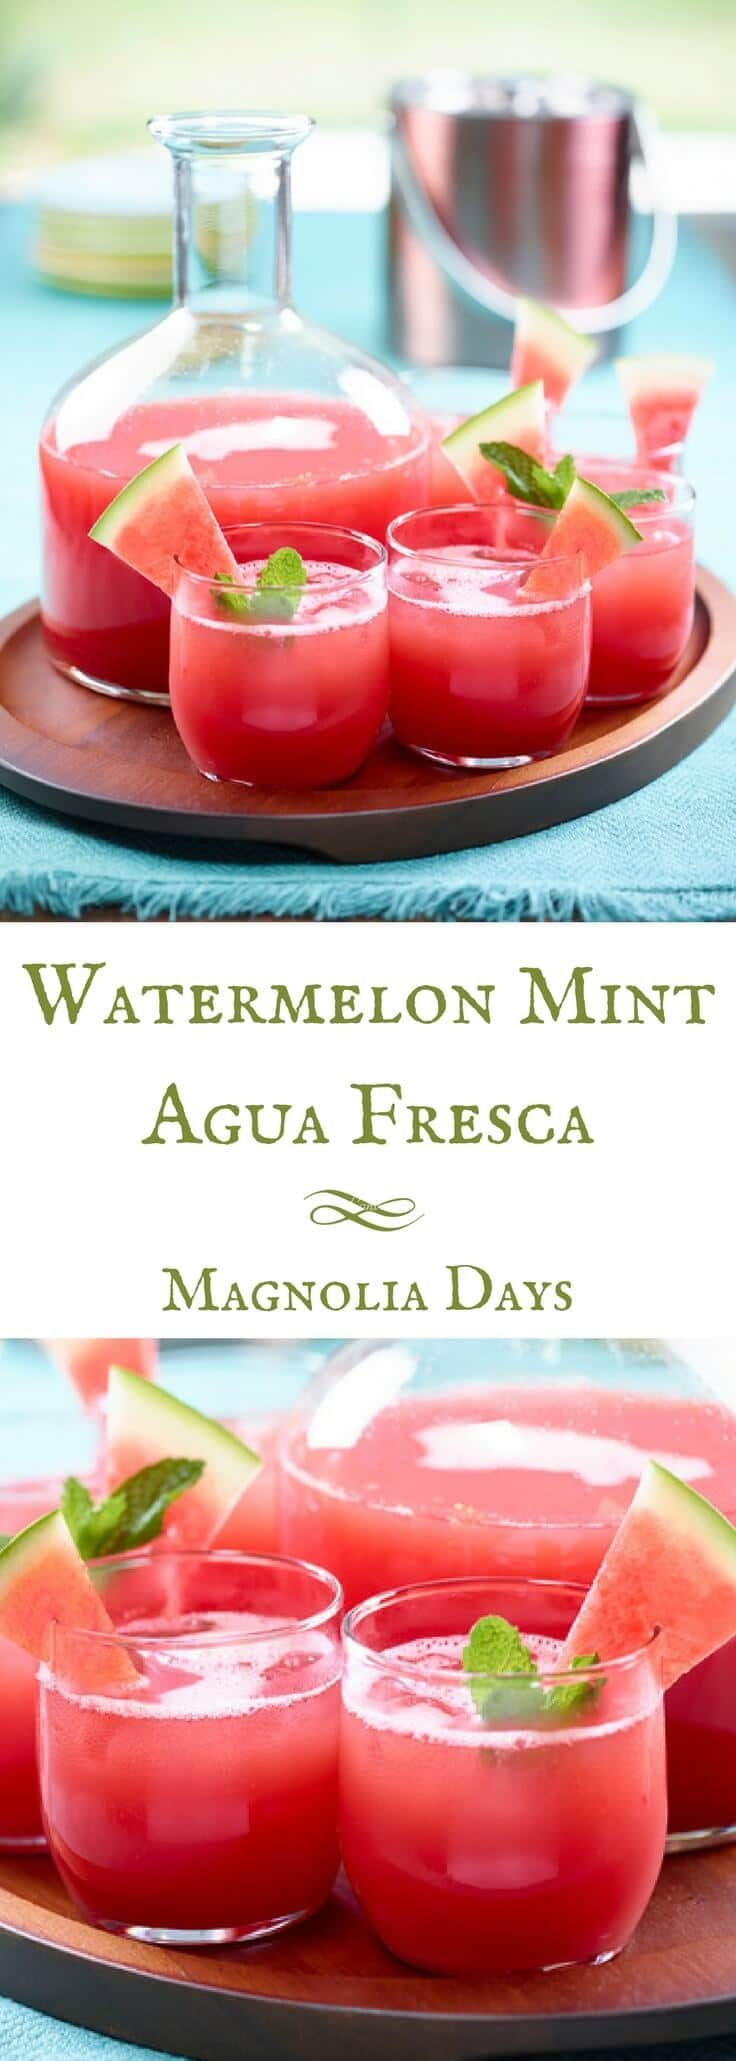 Refreshing Watermelon Mint Agua Fresca is the perfect spring or summer beverage.  It's made with just a few simple ingredients, and can be served nonalcoholic or made into a cocktail. via @magnolia_days